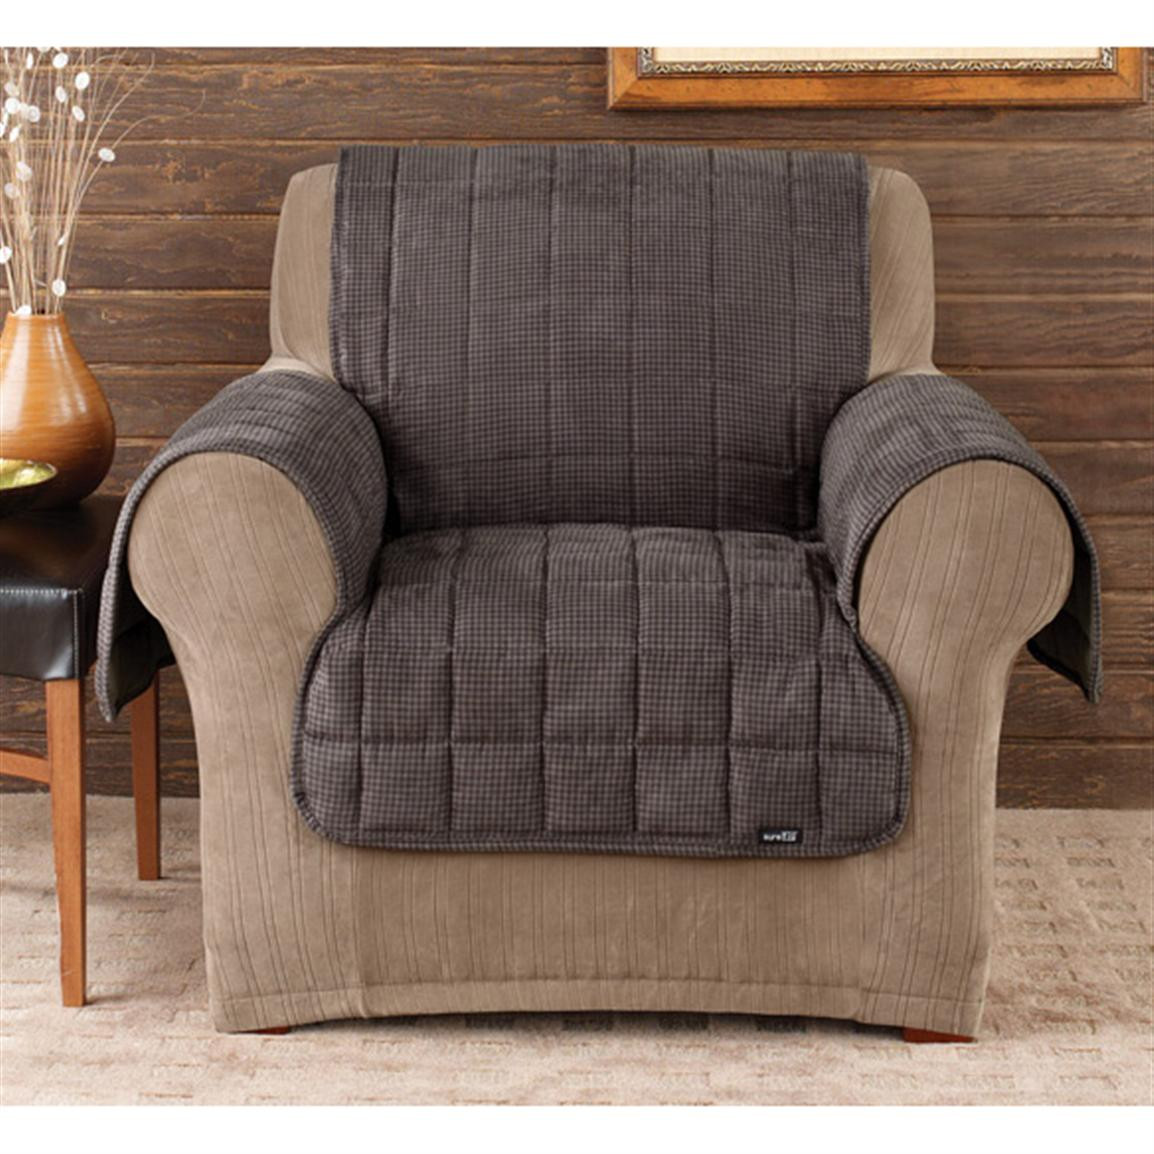 Best ideas about Sure Fit Chair Covers . Save or Pin Sure Fit Deluxe Velvet Mini check Chair Pet Cover Now.